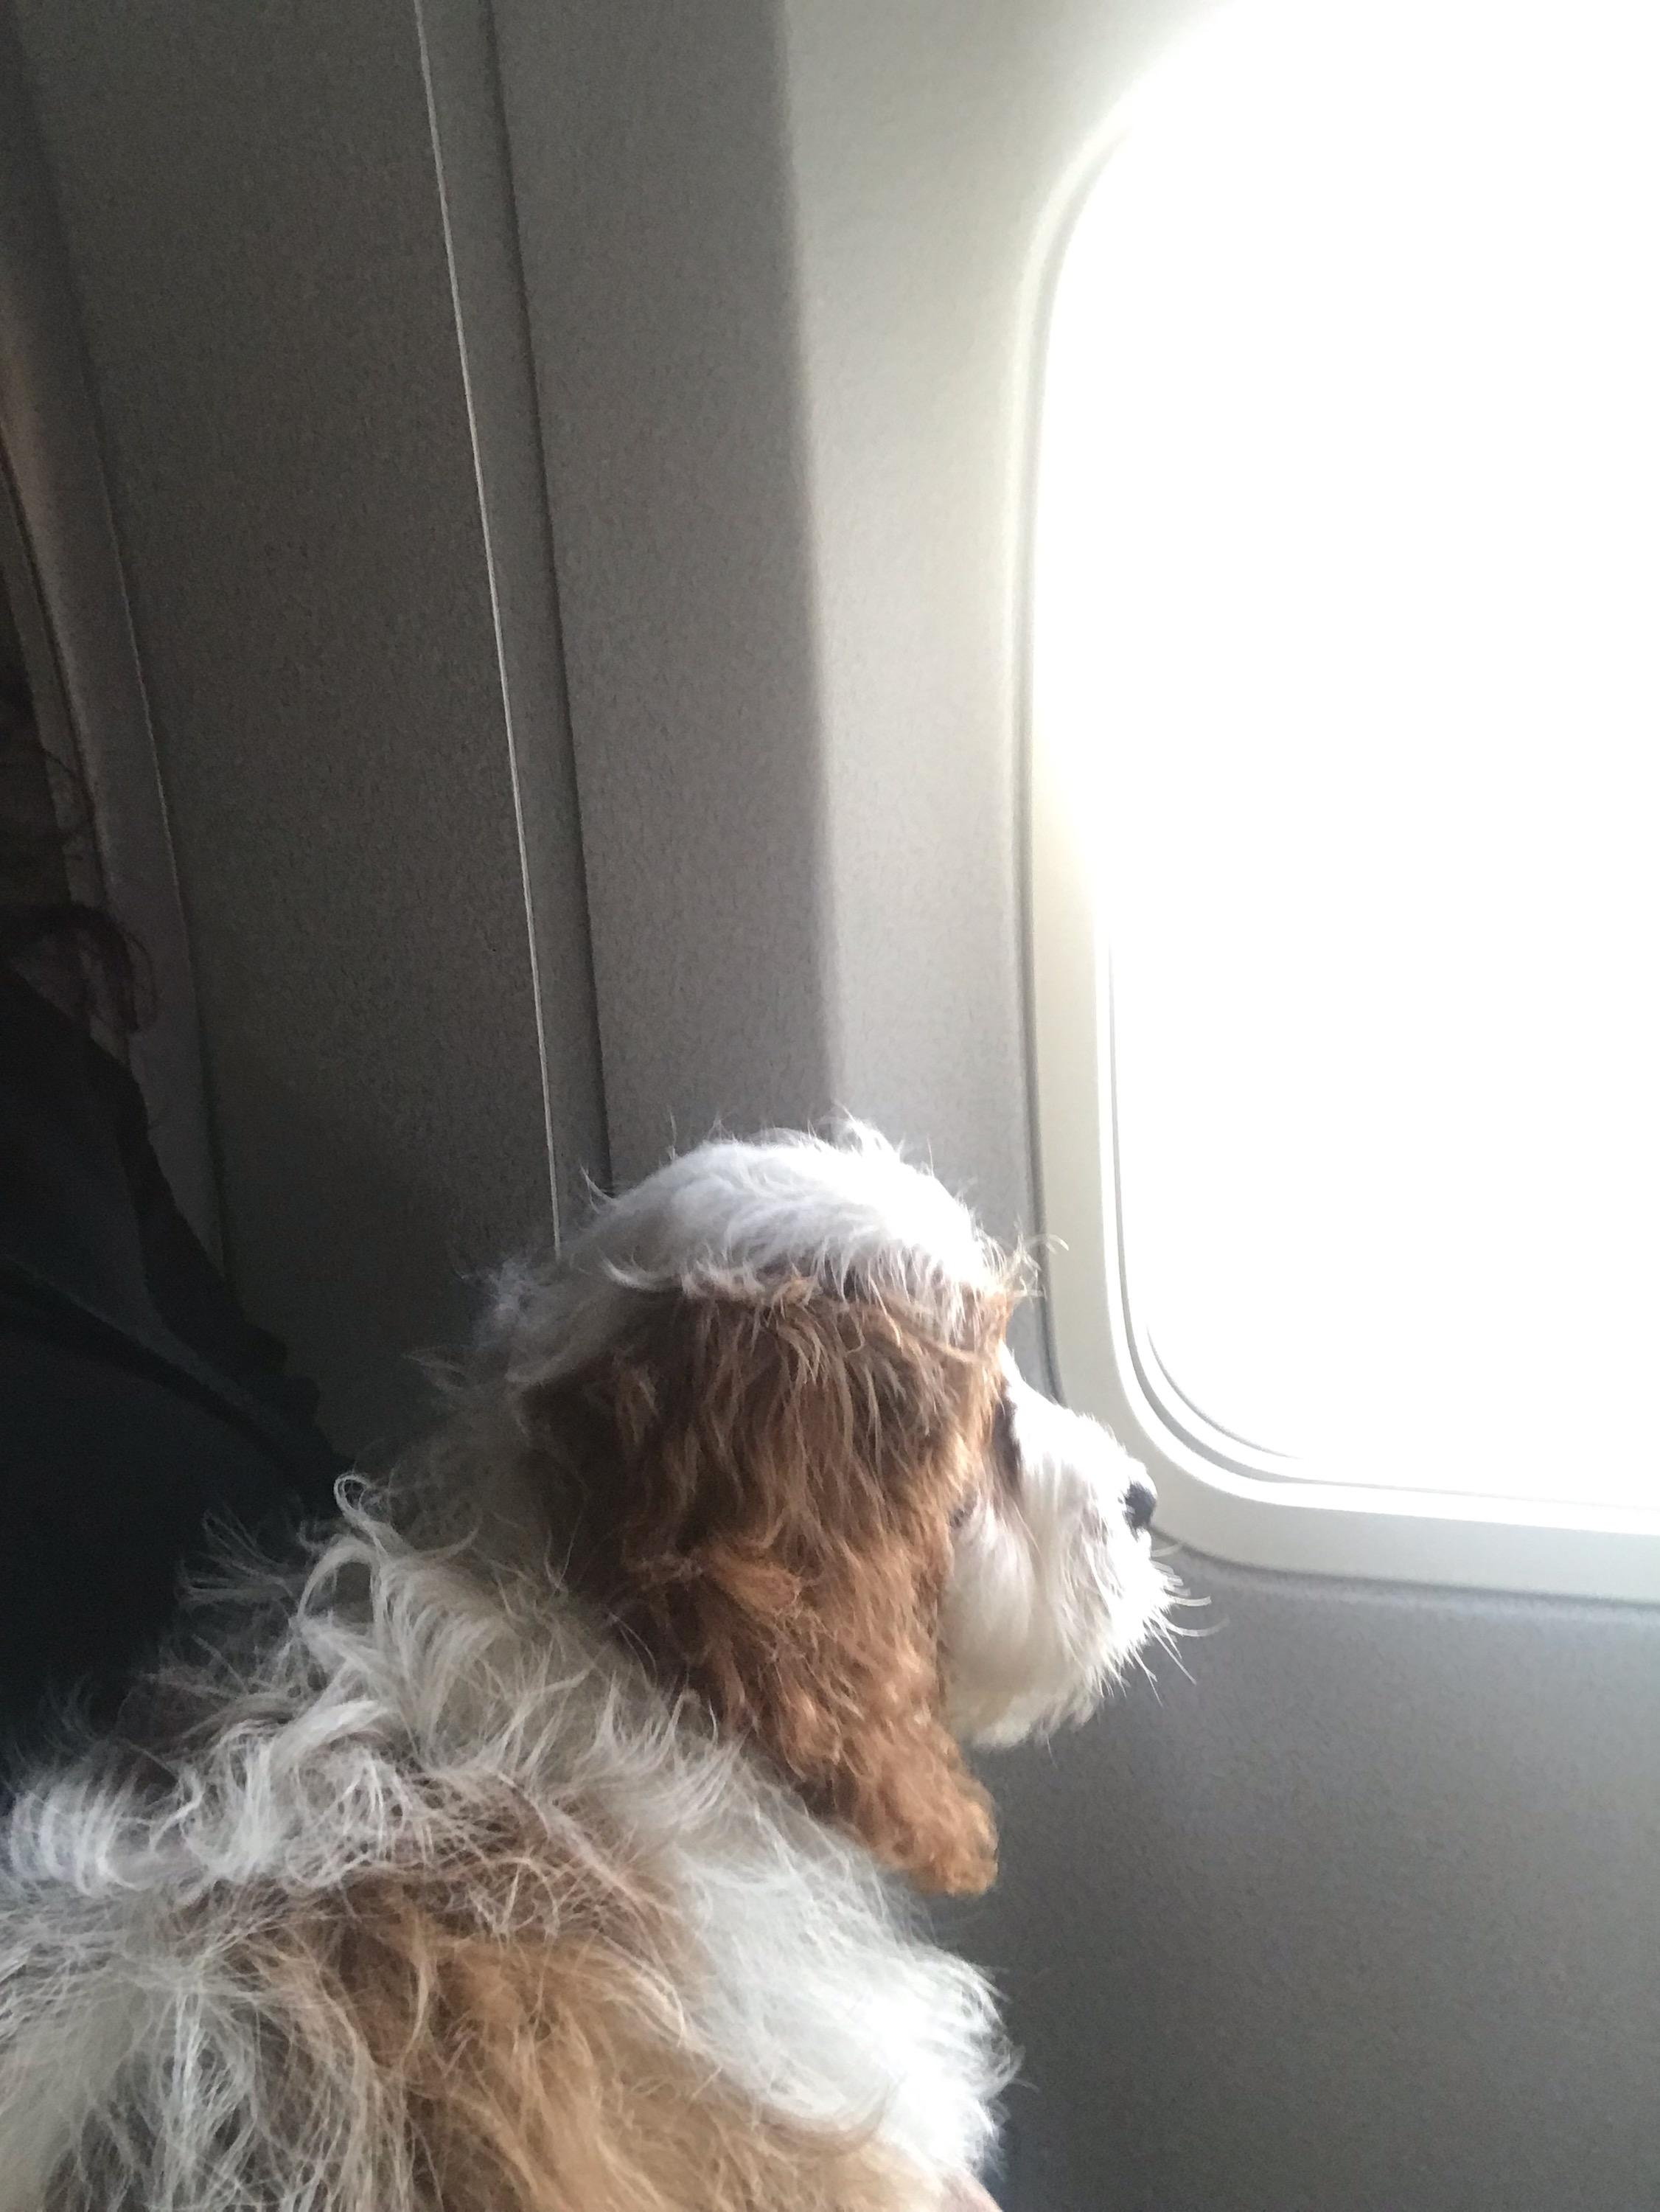 Puppy traveling in airplane cabin with flight nanny